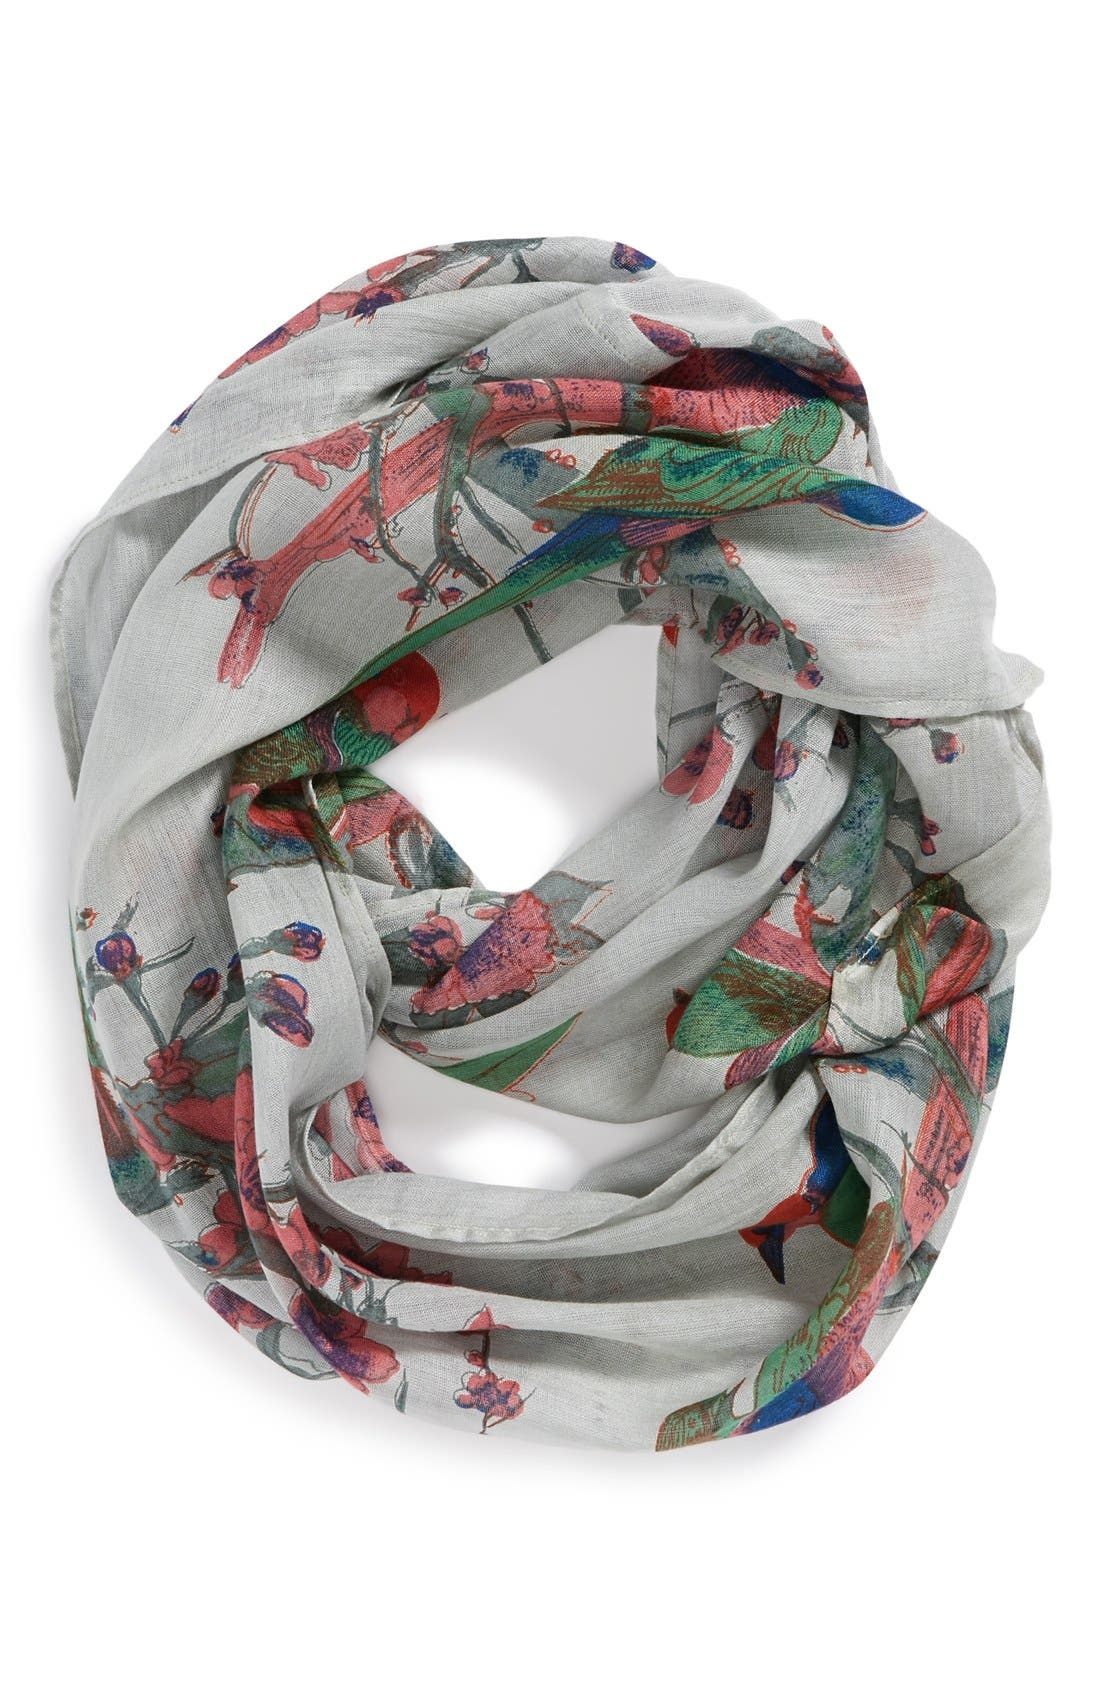 Alternate Image 1 Selected - POVERTY FLATS by rian 'Love Birds' Infinity Scarf